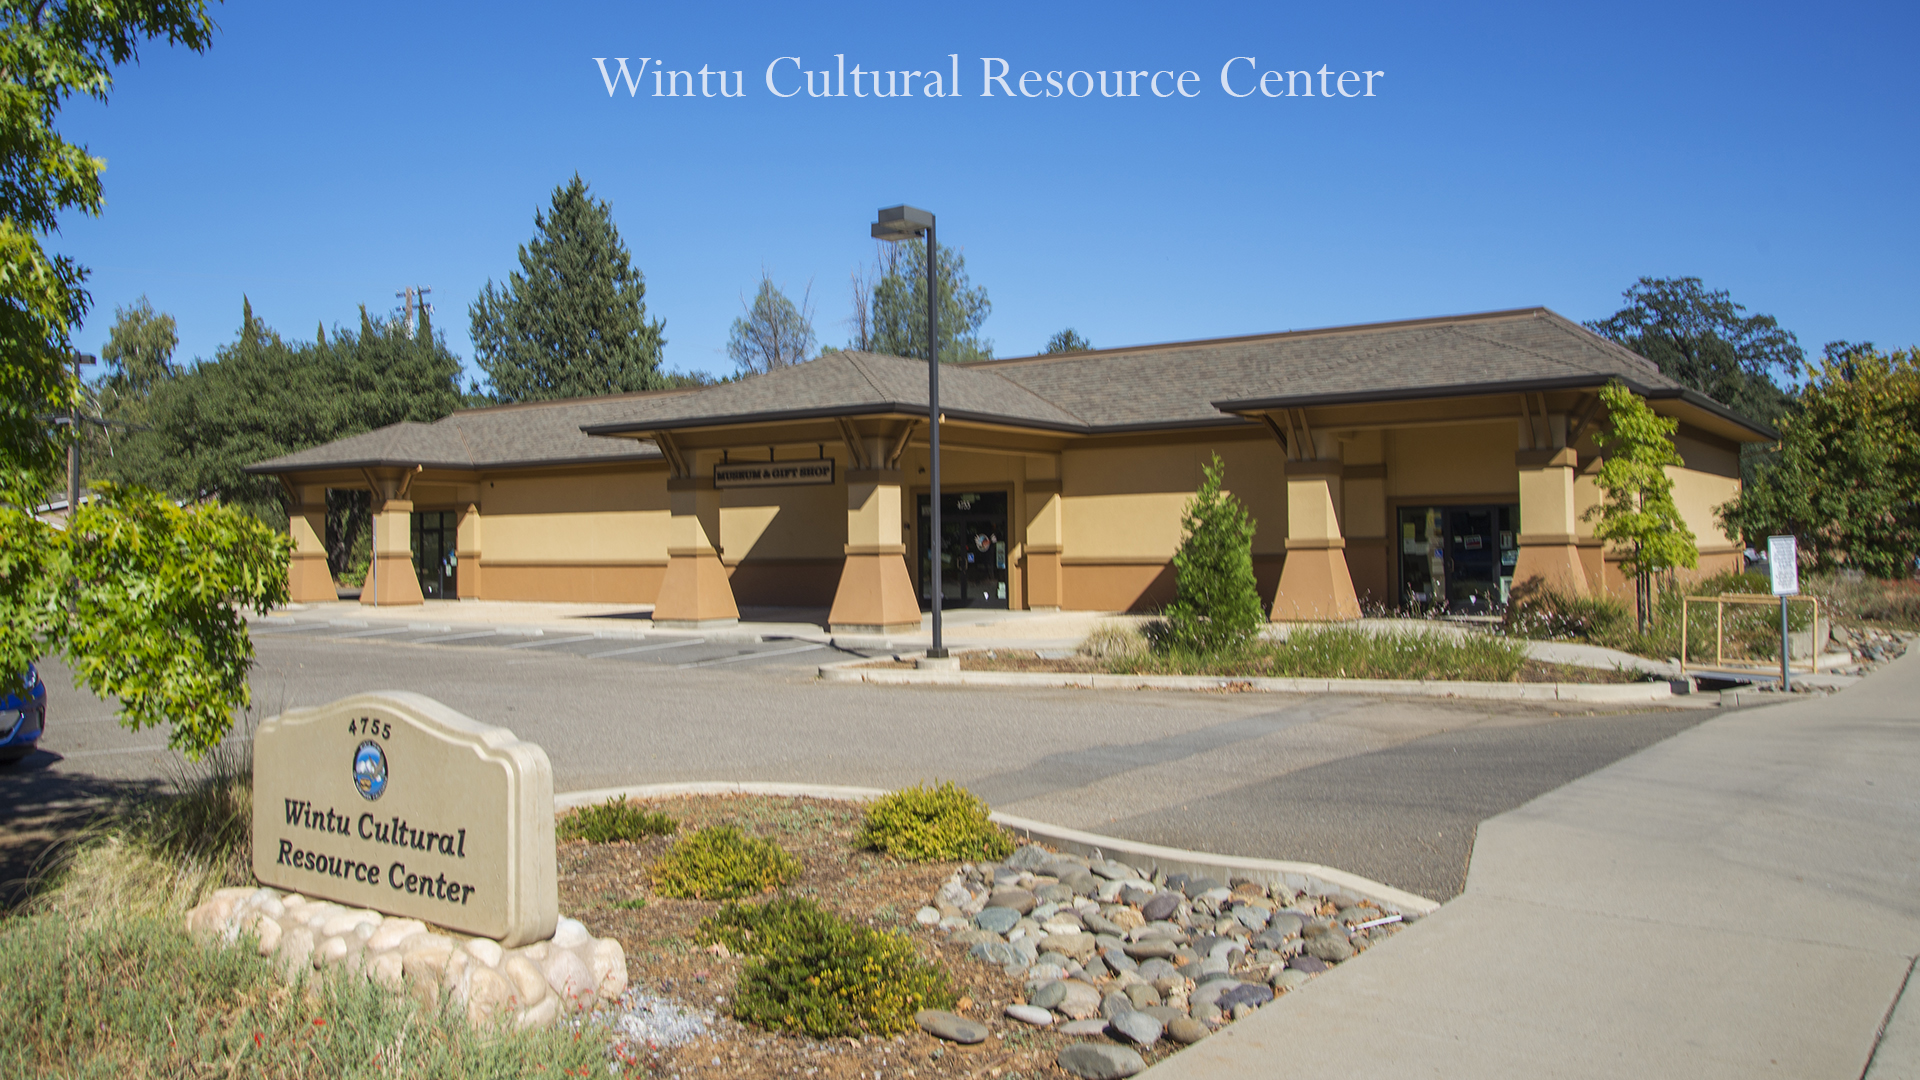 Wintu Cultural Resource Center